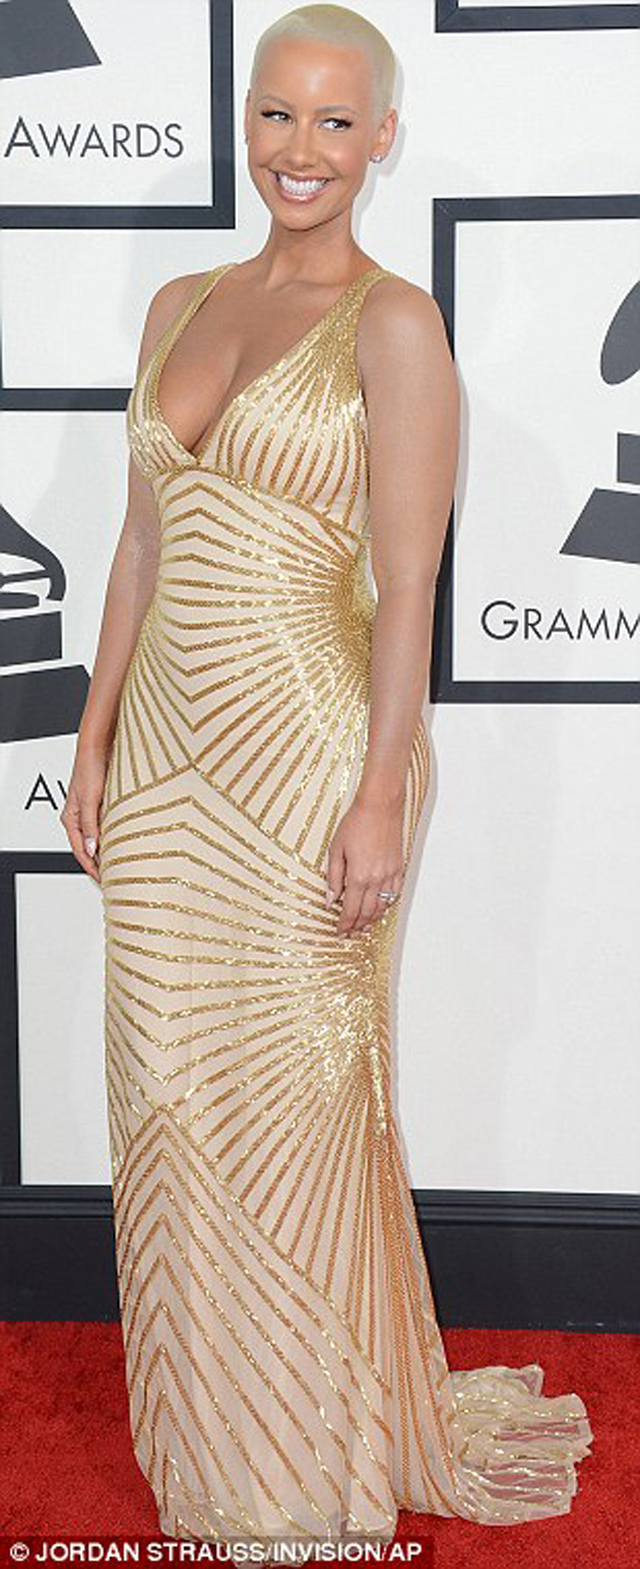 Amber Rose sported a dramatic pale gold gown which showed off her ample curves, also hiding her tattoos with make-up